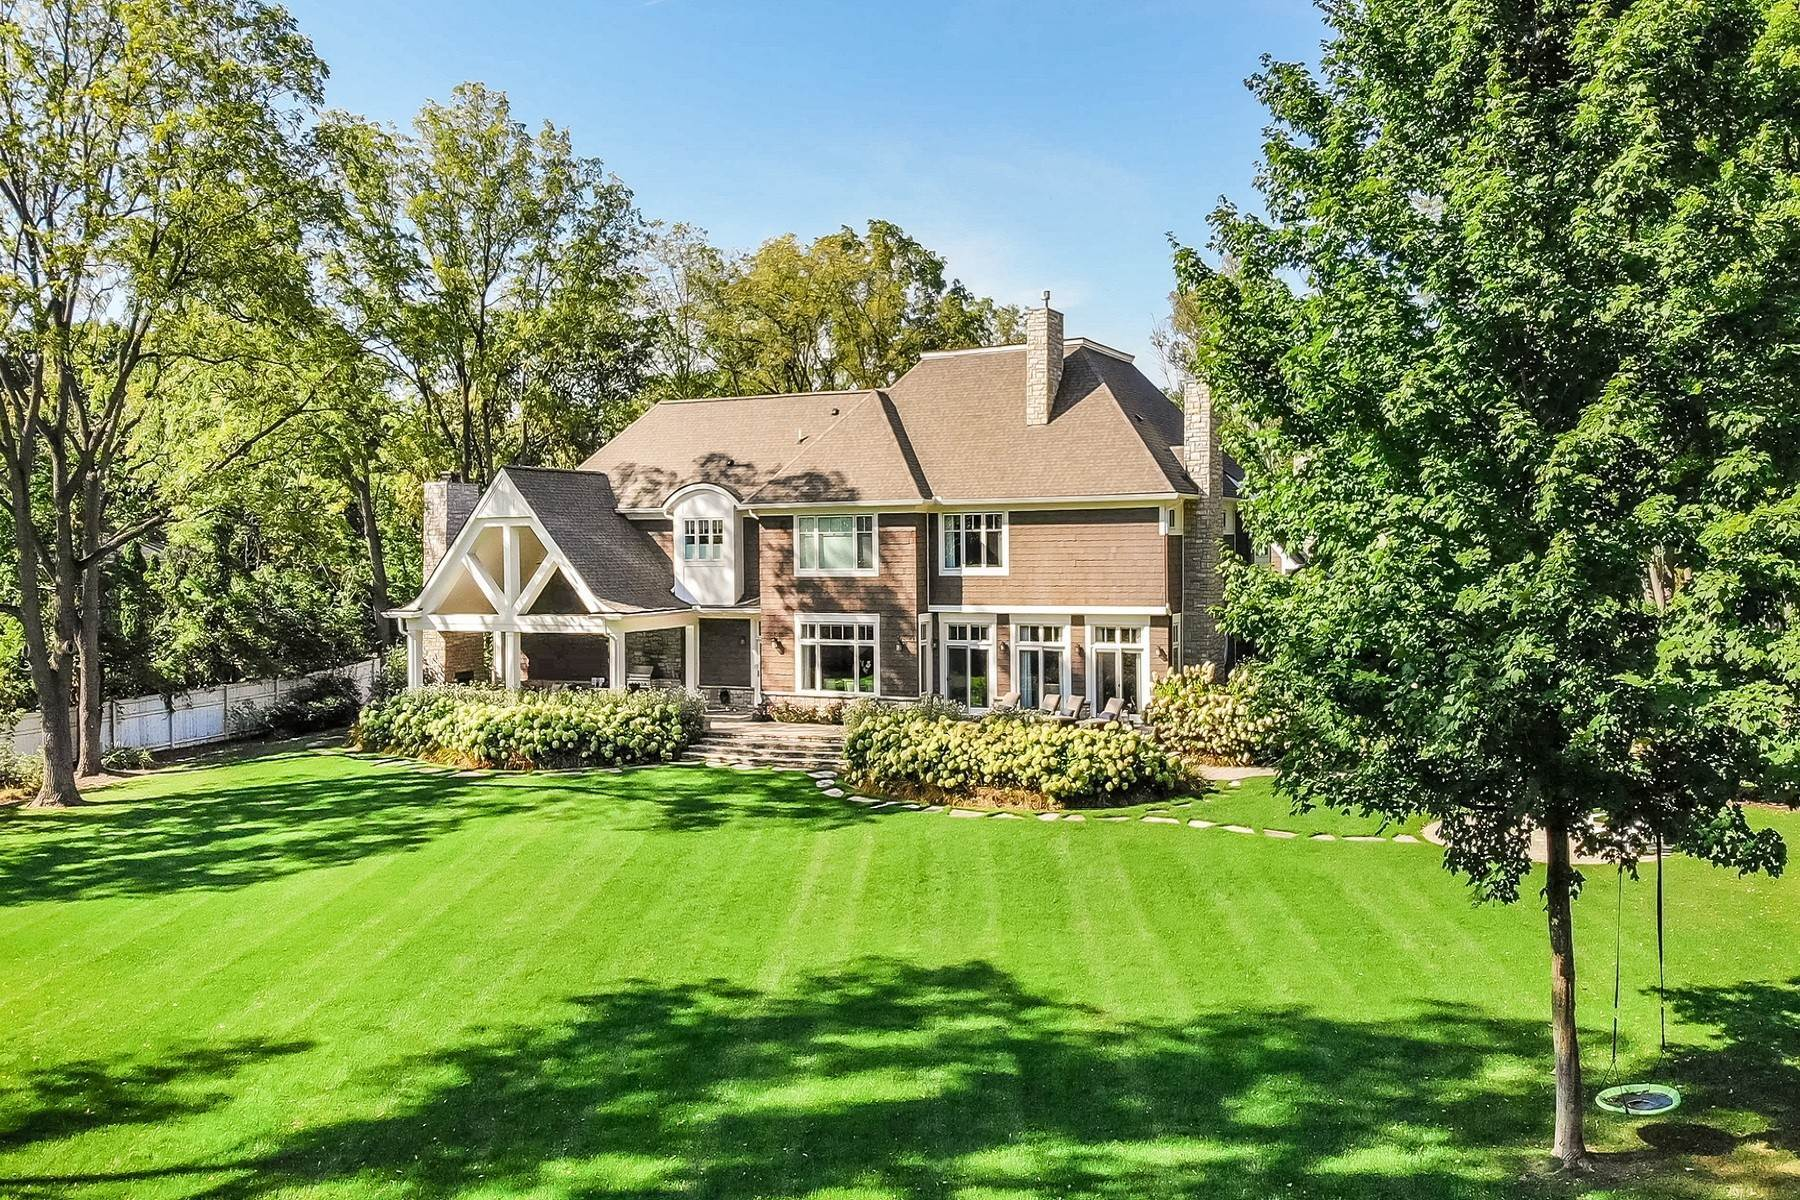 2. Single Family Homes for Sale at Bloomfield Hills 2025 Quarton Road Bloomfield Hills, Michigan 48301 United States